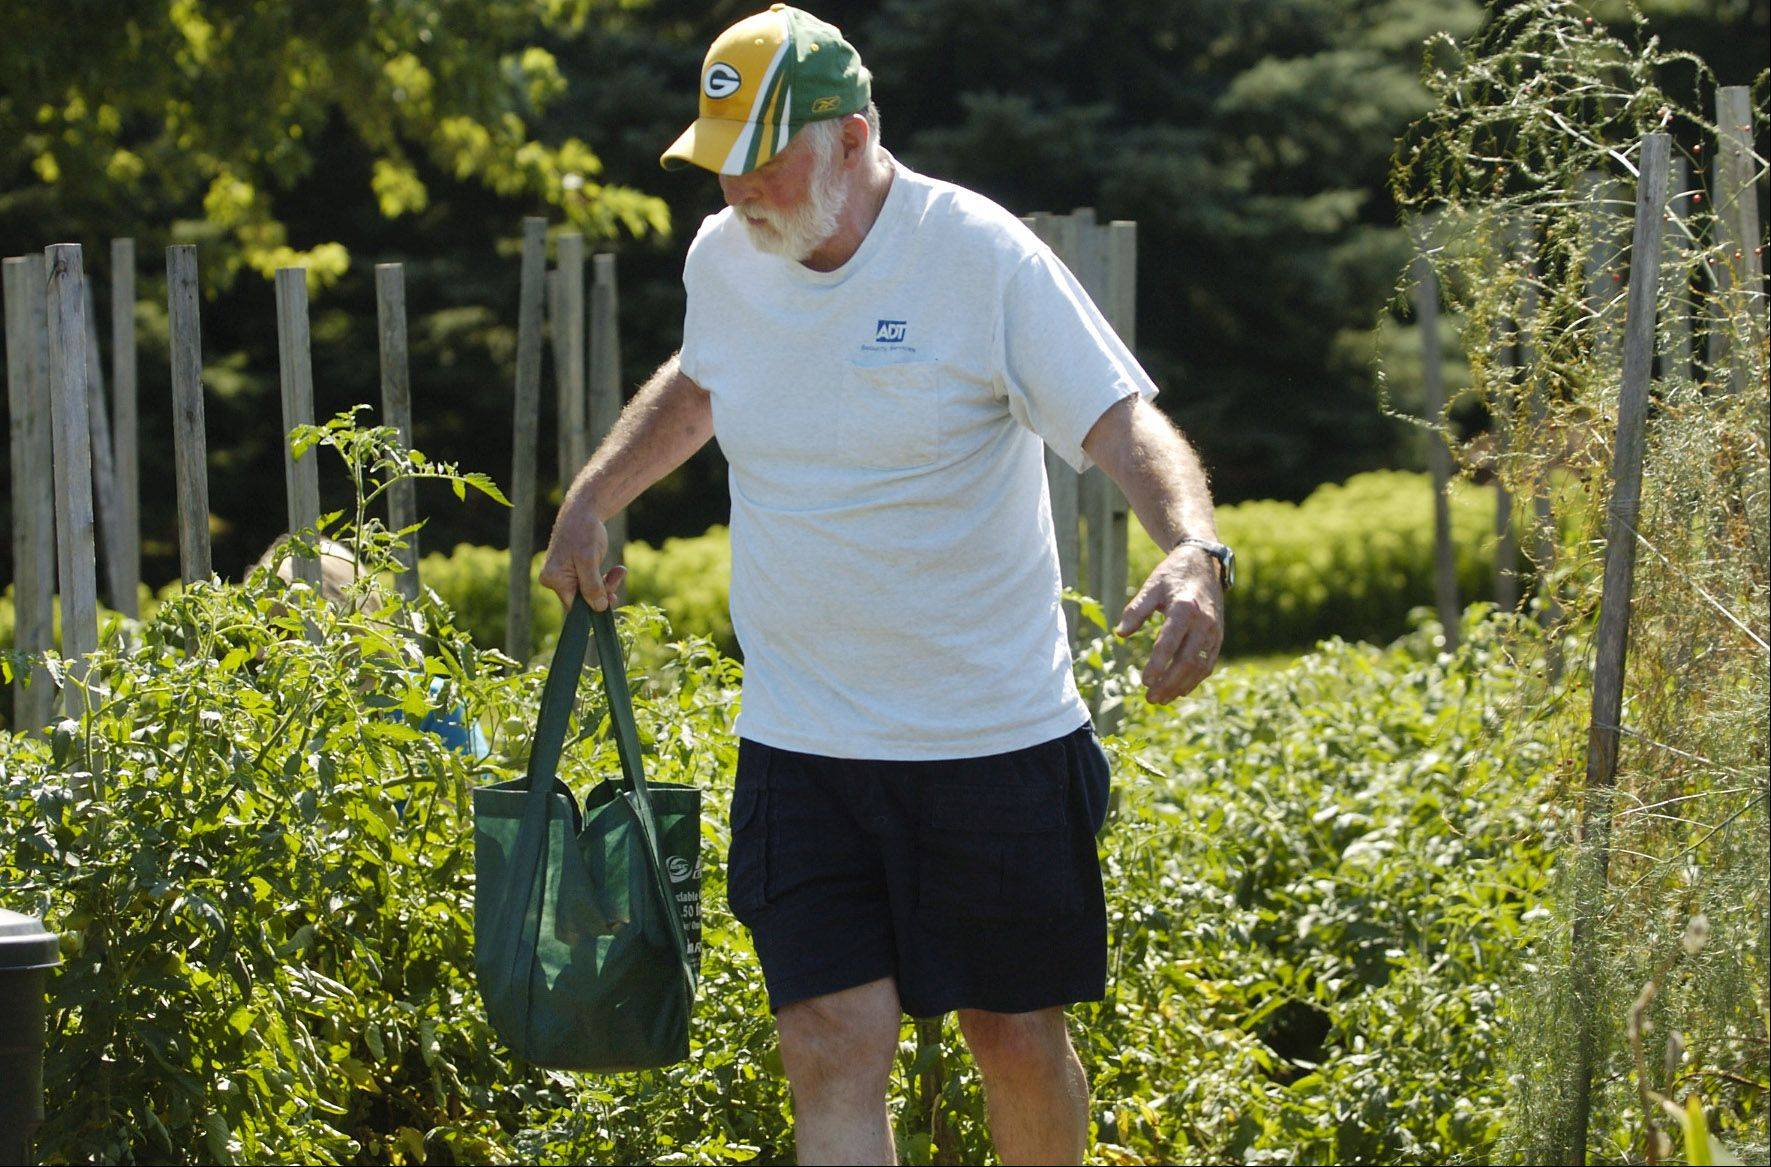 Richard Neidl carries a bag of tomatoes from the tomato garden behind Covenant Church in Schaumburg.